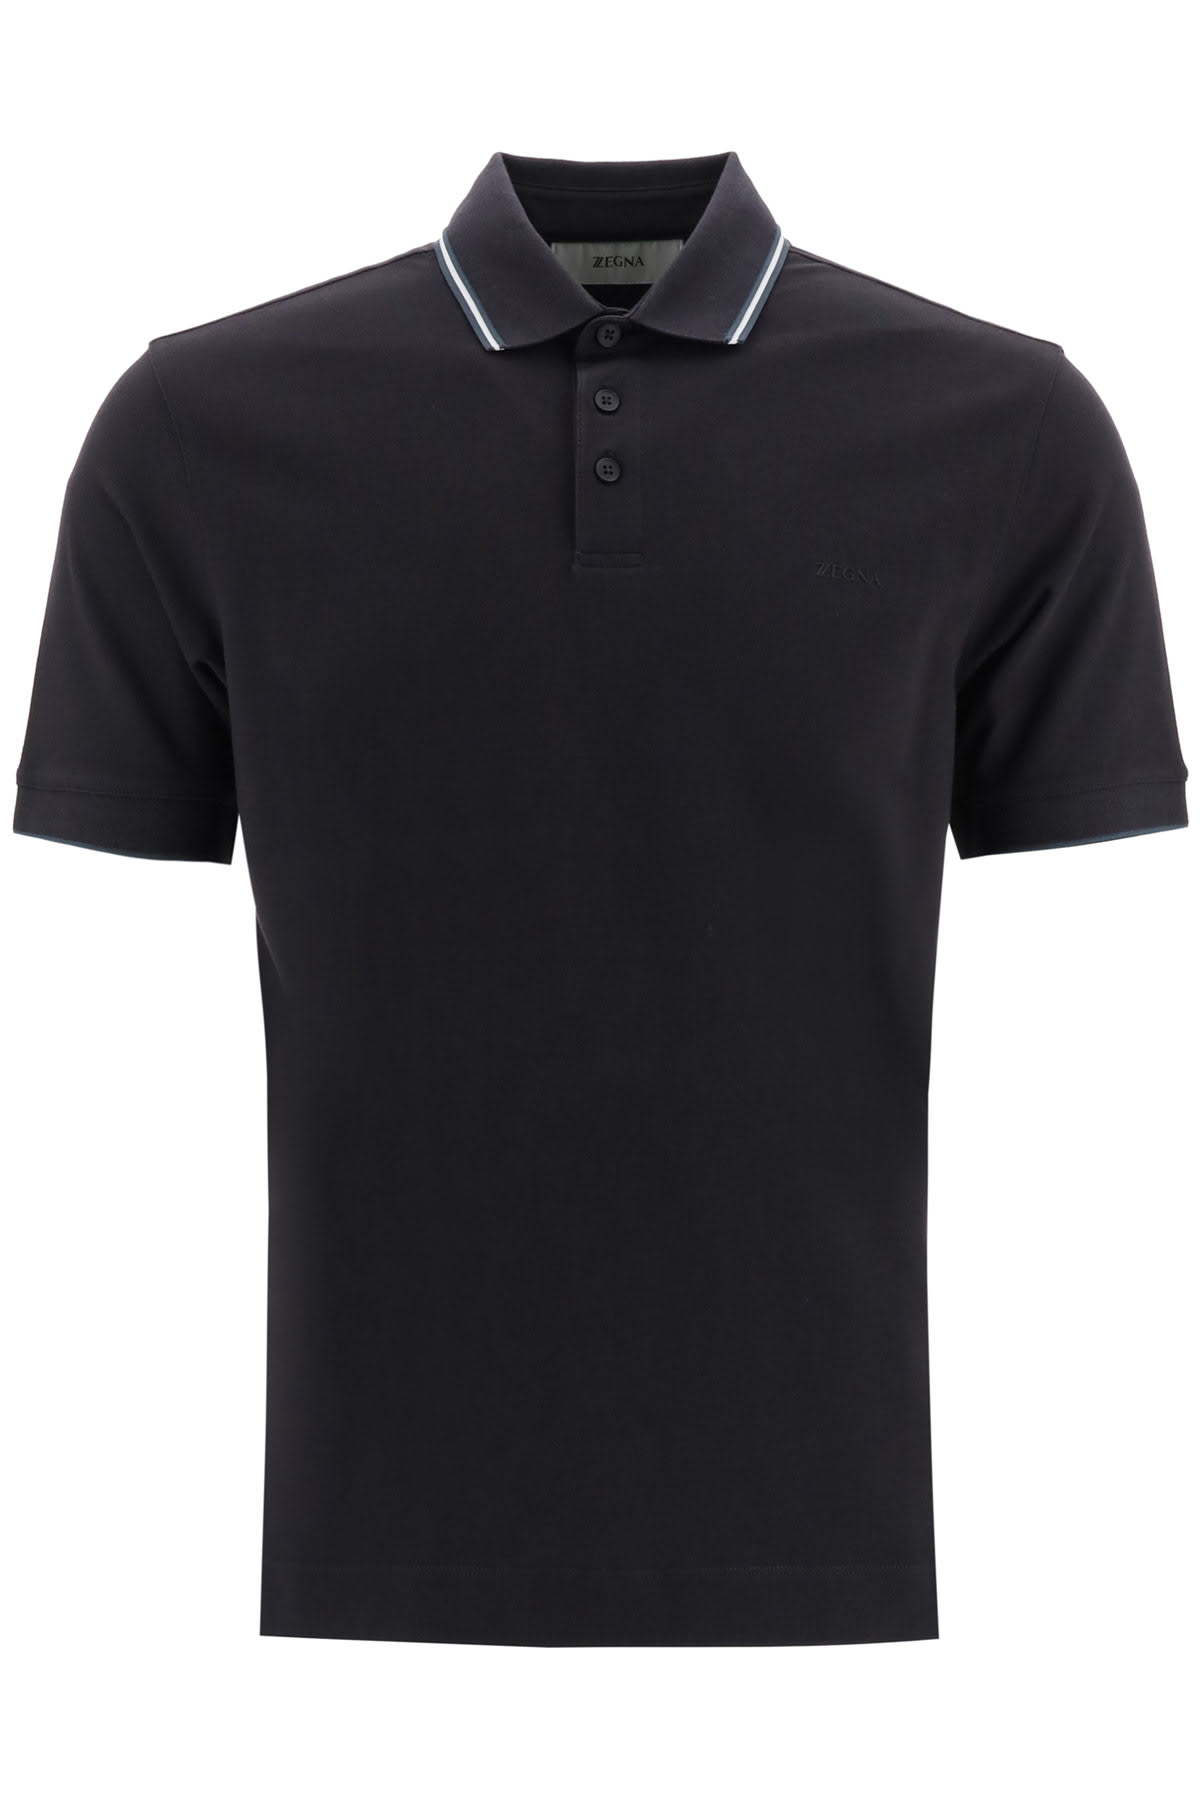 Z Zegna POLO SHIRT WITH LOGO